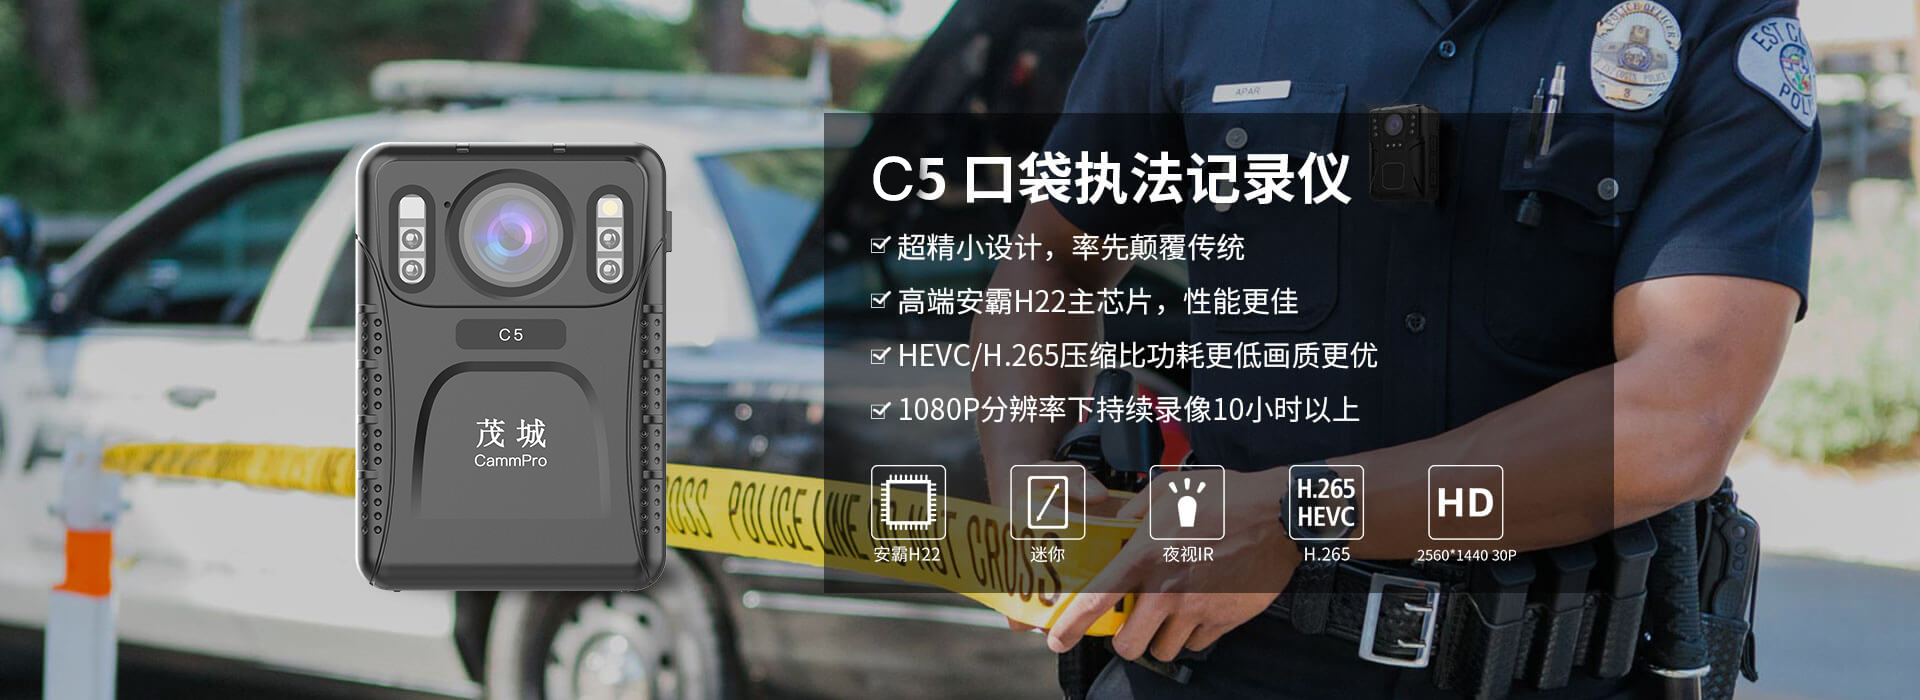 http://www.policecamera.cn/body-worn-camera/C5-super-mini-body-camera.html